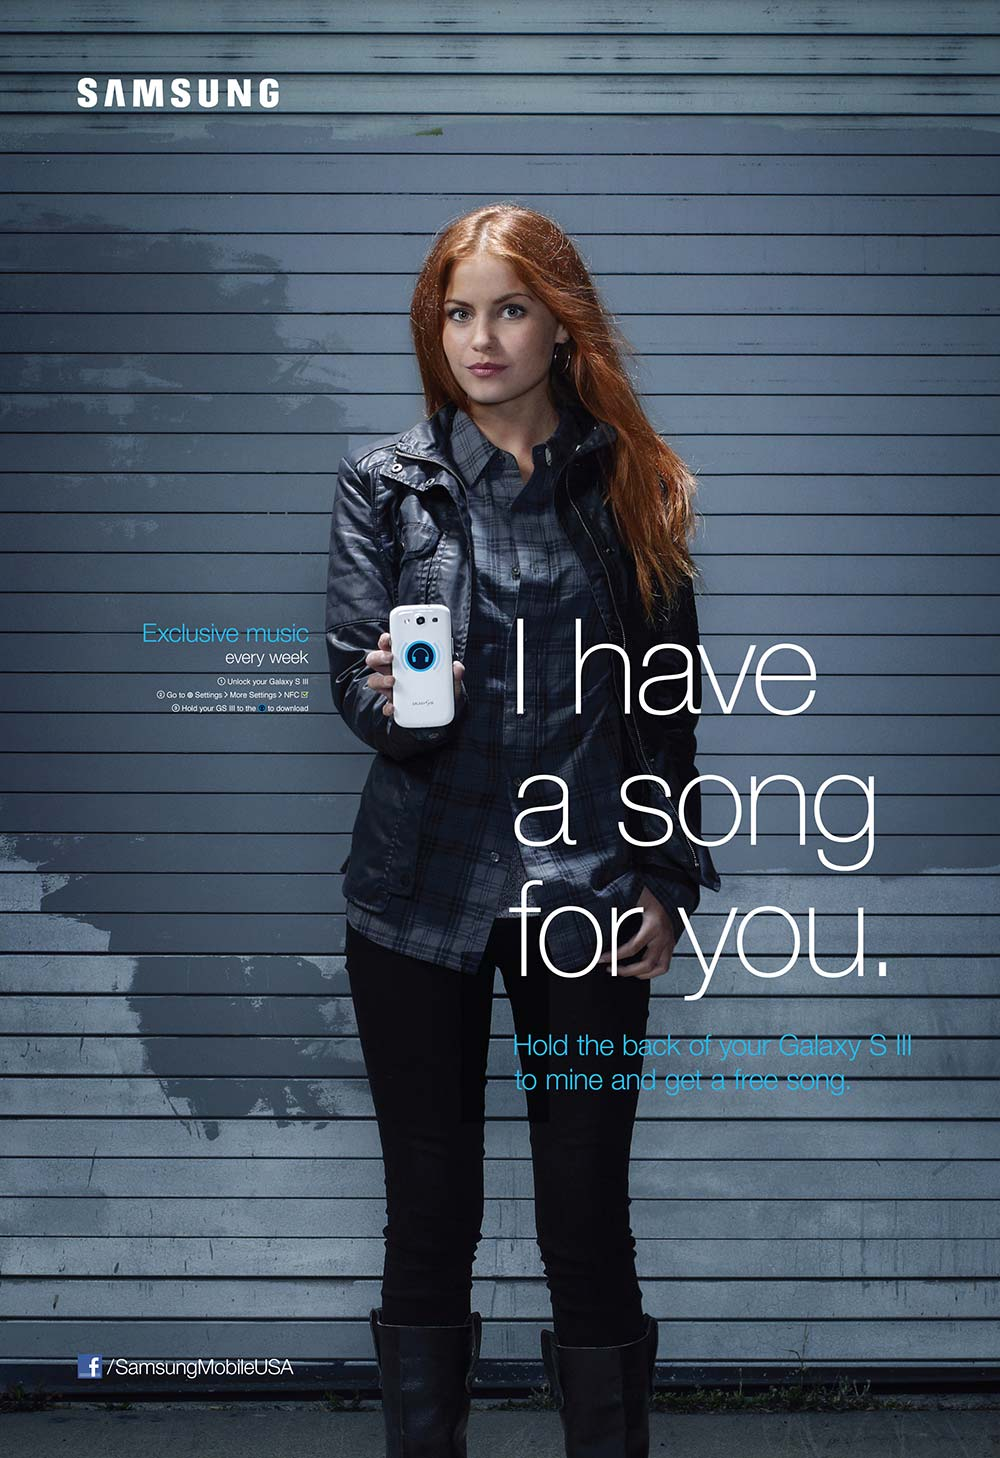 Red haired young woman holding phone in Samsung NFC powered poster